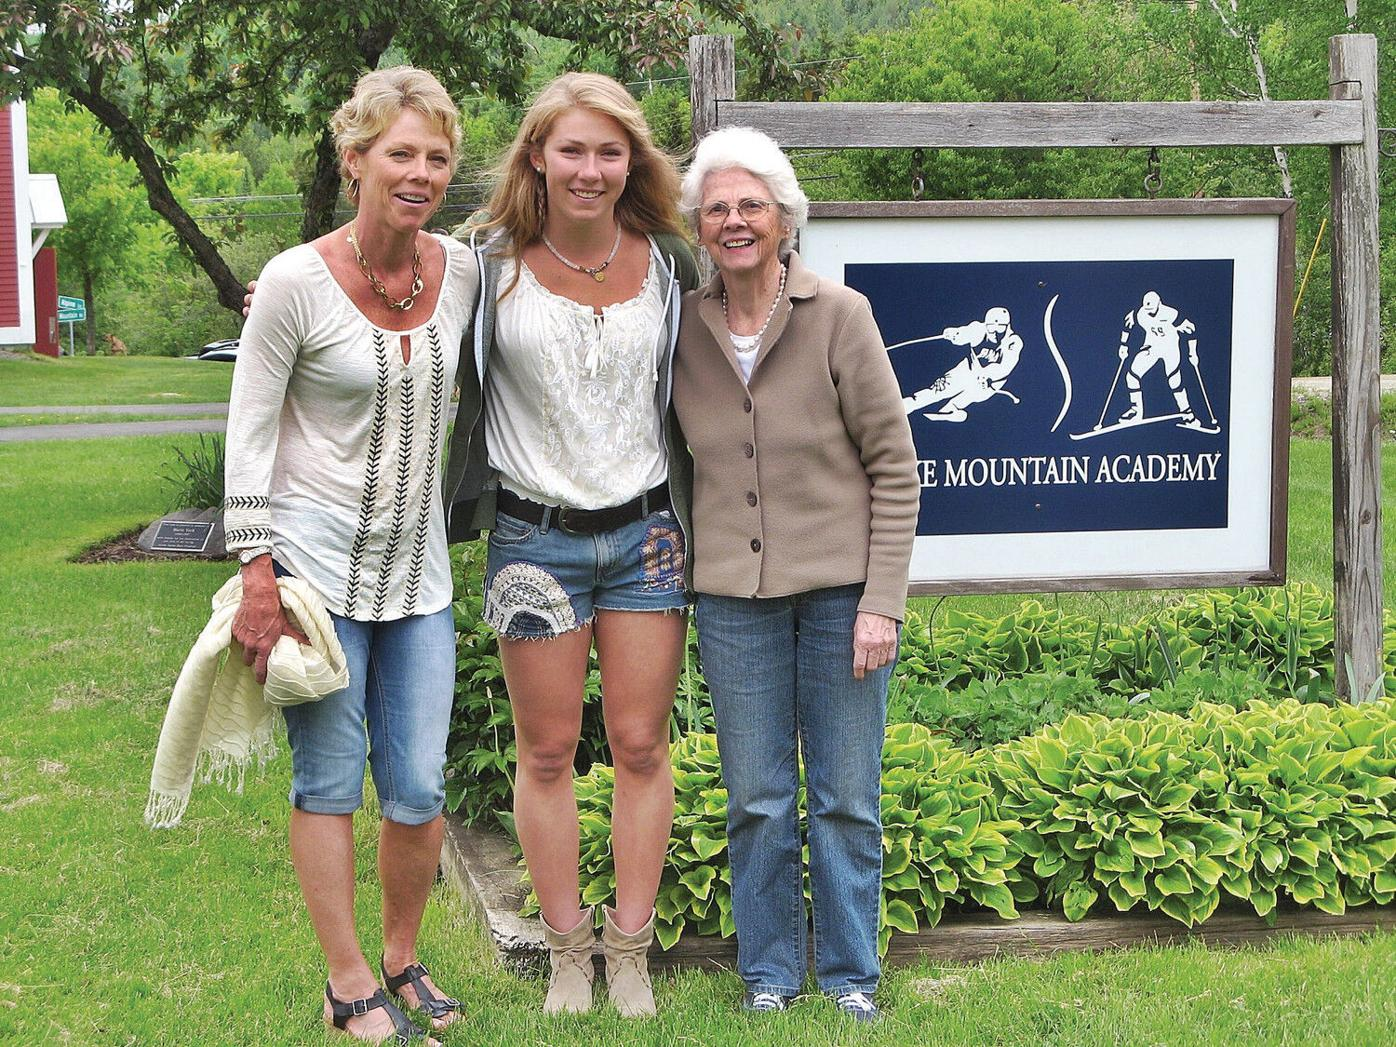 Olympic gold medalist Mikaela Shiffrin, groomed from early age, hasn't forgotten her roots